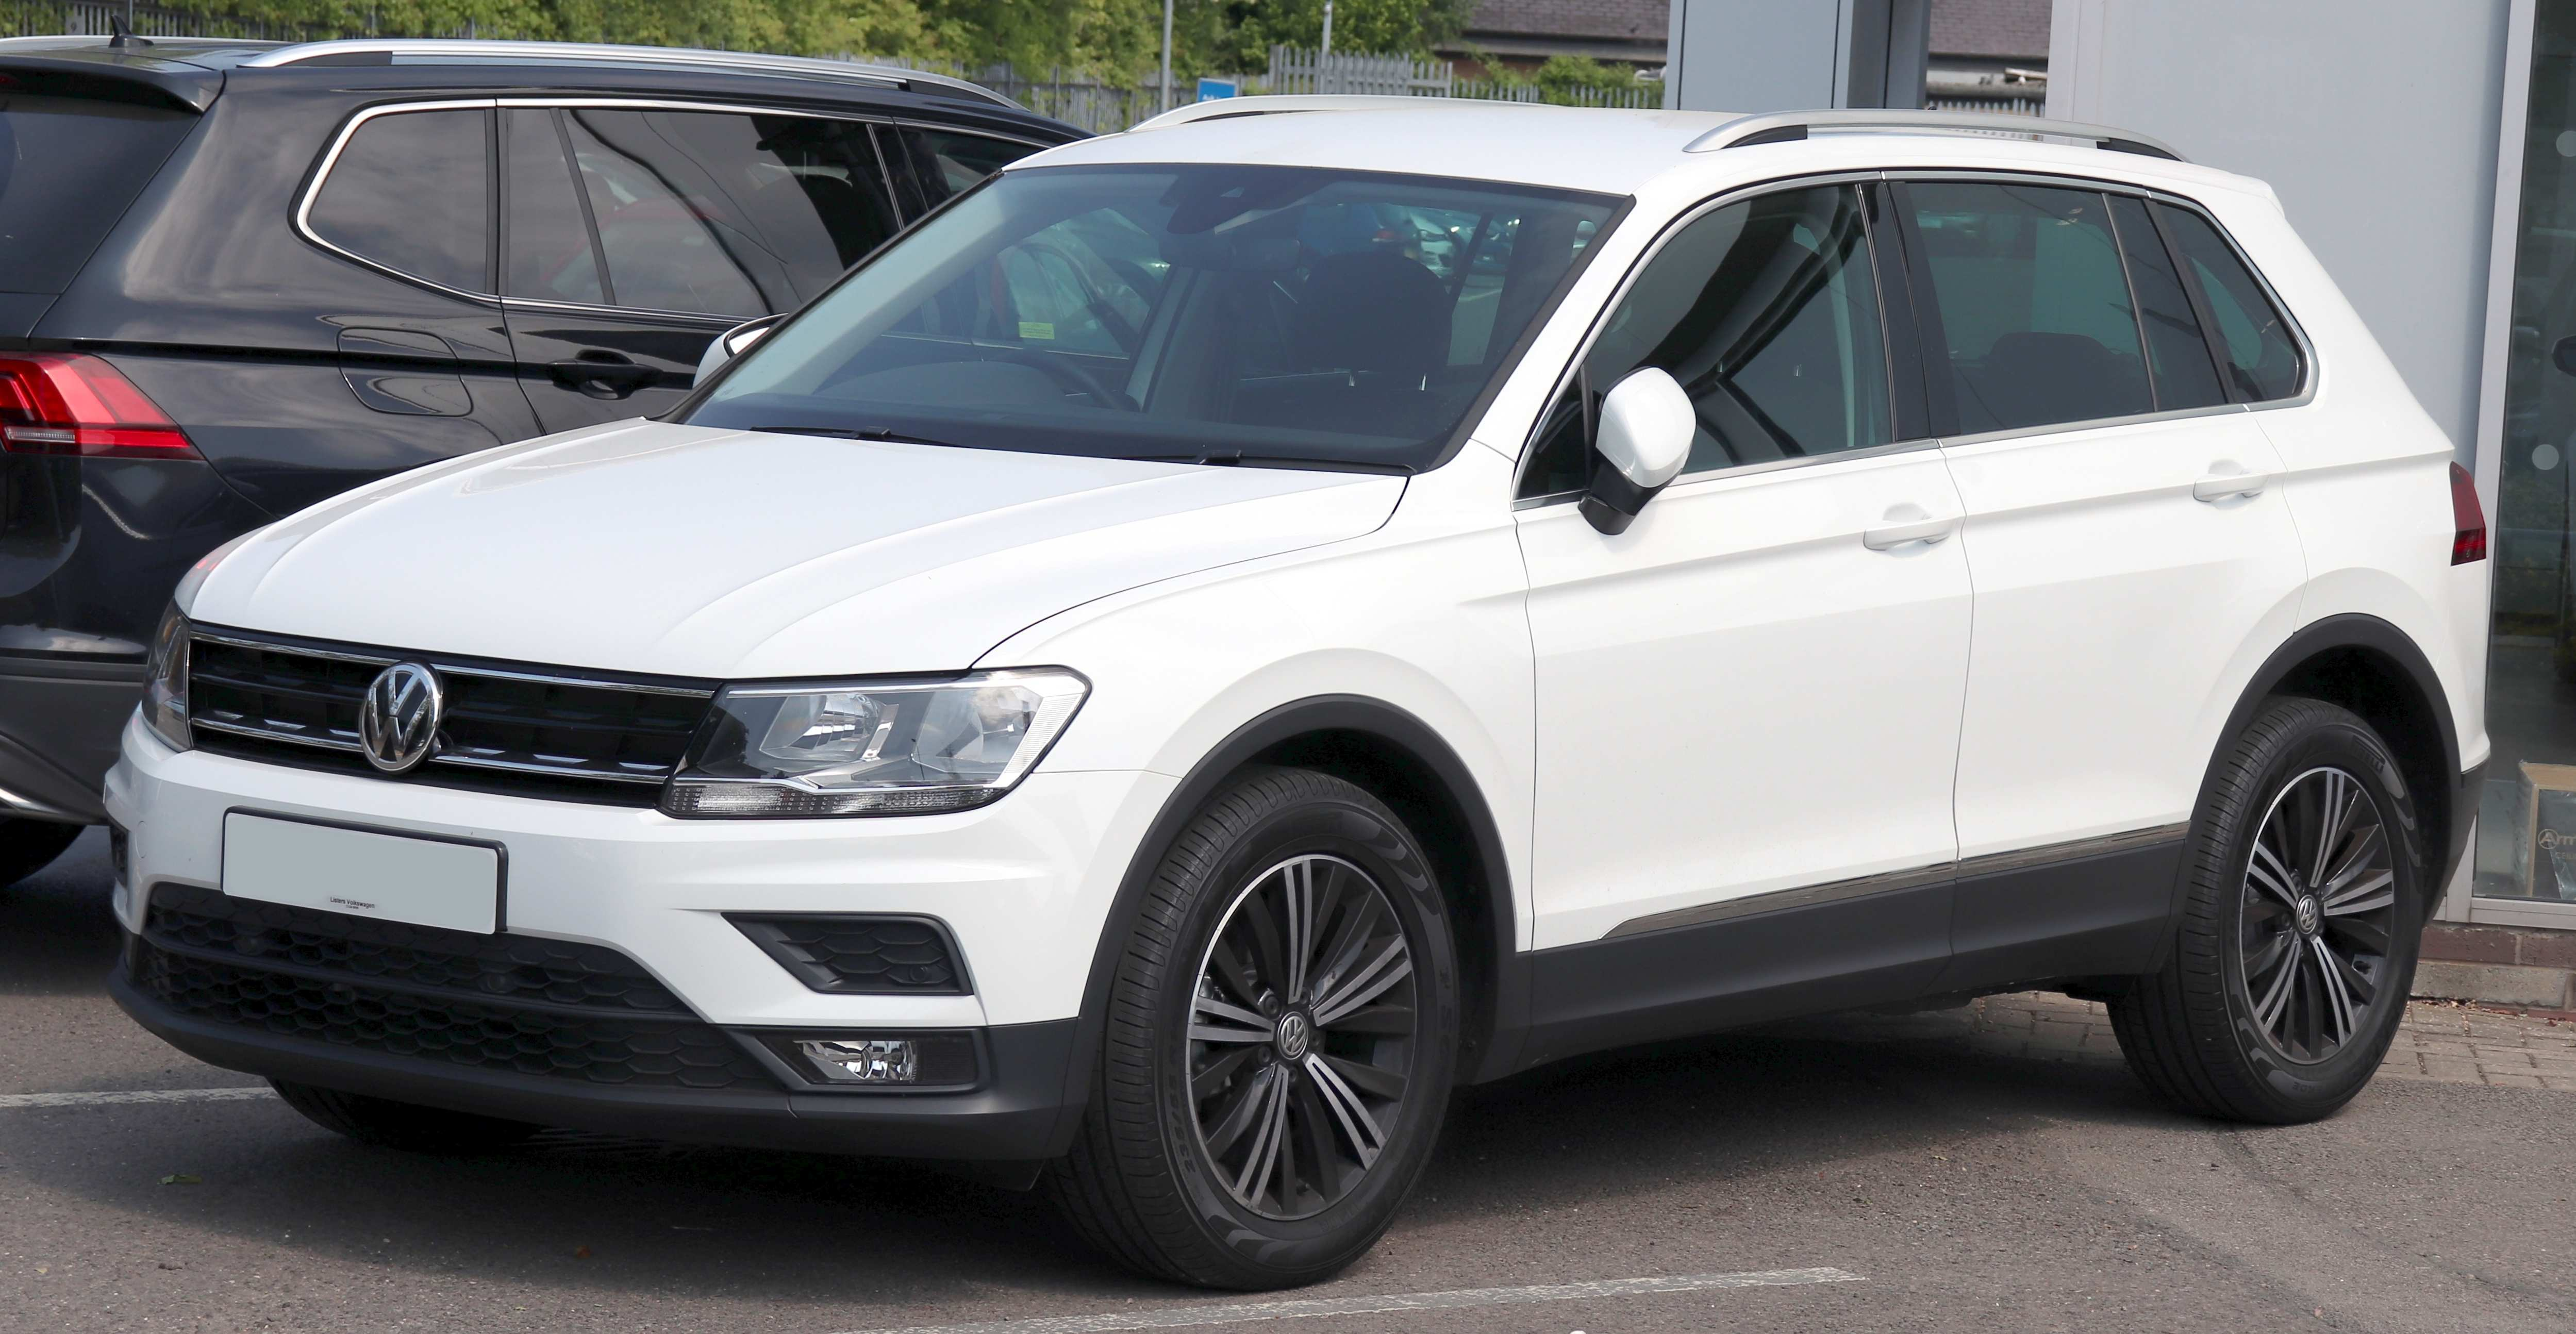 51 All New 2019 VW Tiguan Exterior And Interior